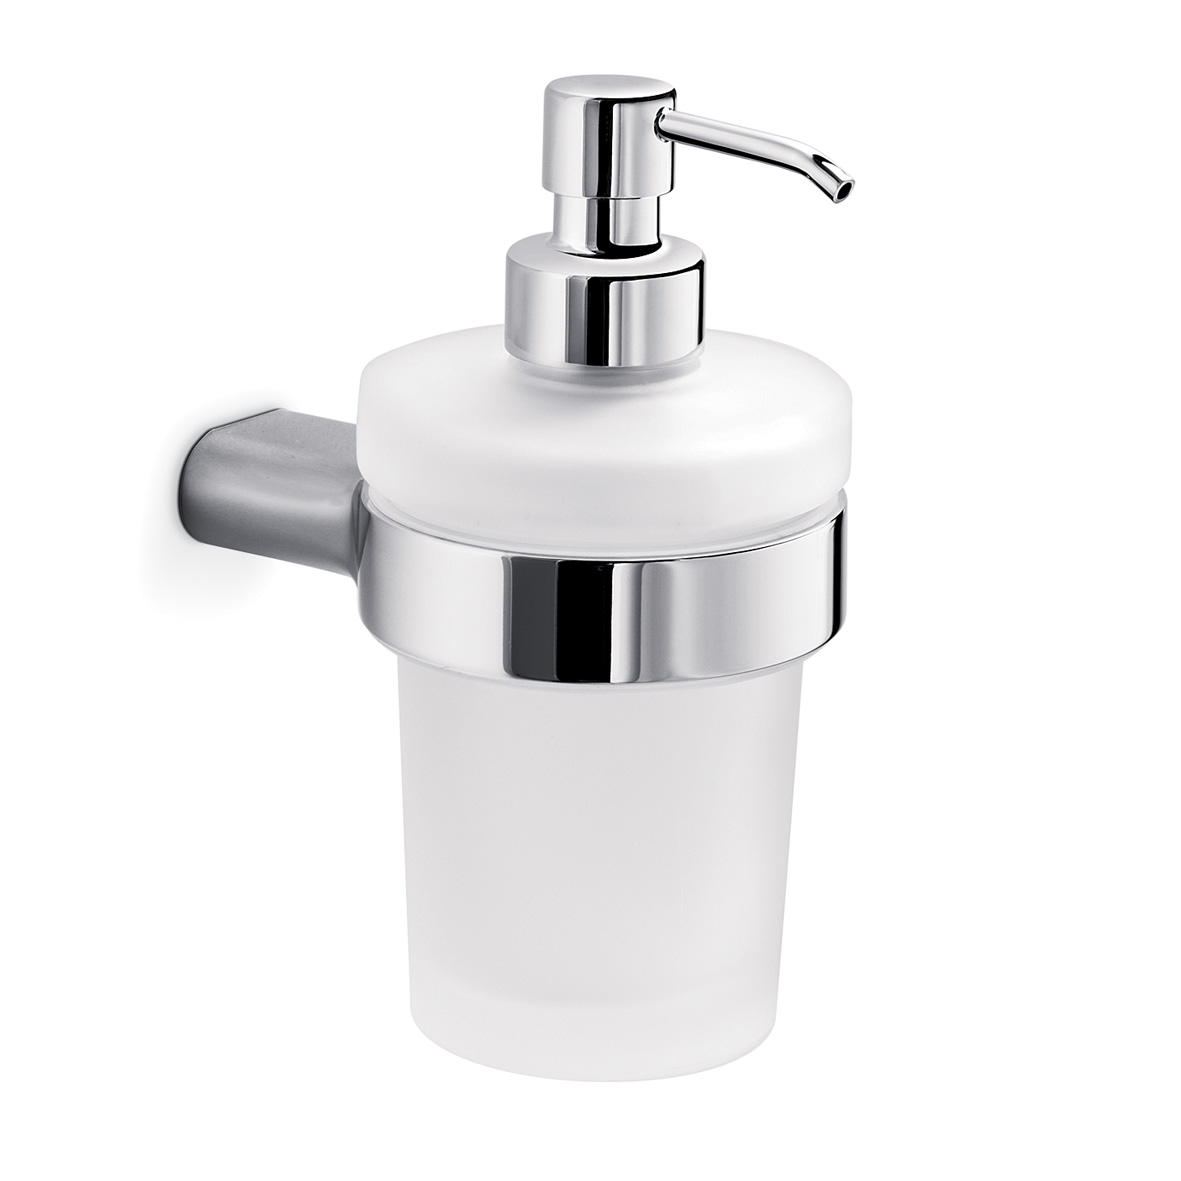 Mito Wall mounted soap dispenser - Brushed Nickel